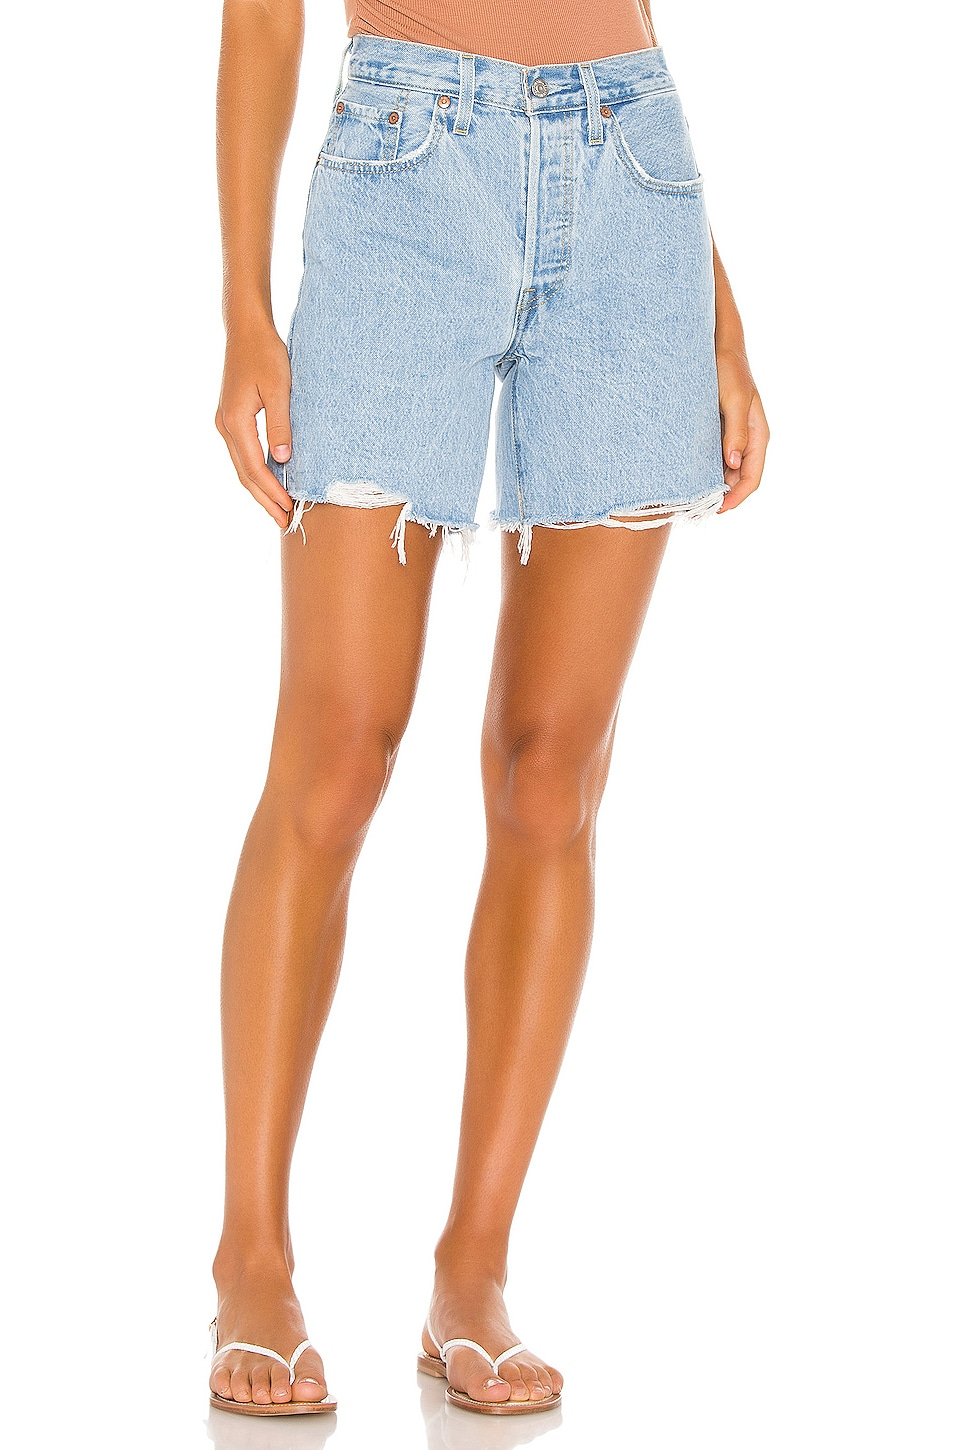 501 Mid Thigh Short             LEVI'S                                                                                                       CA$ 94.58 11